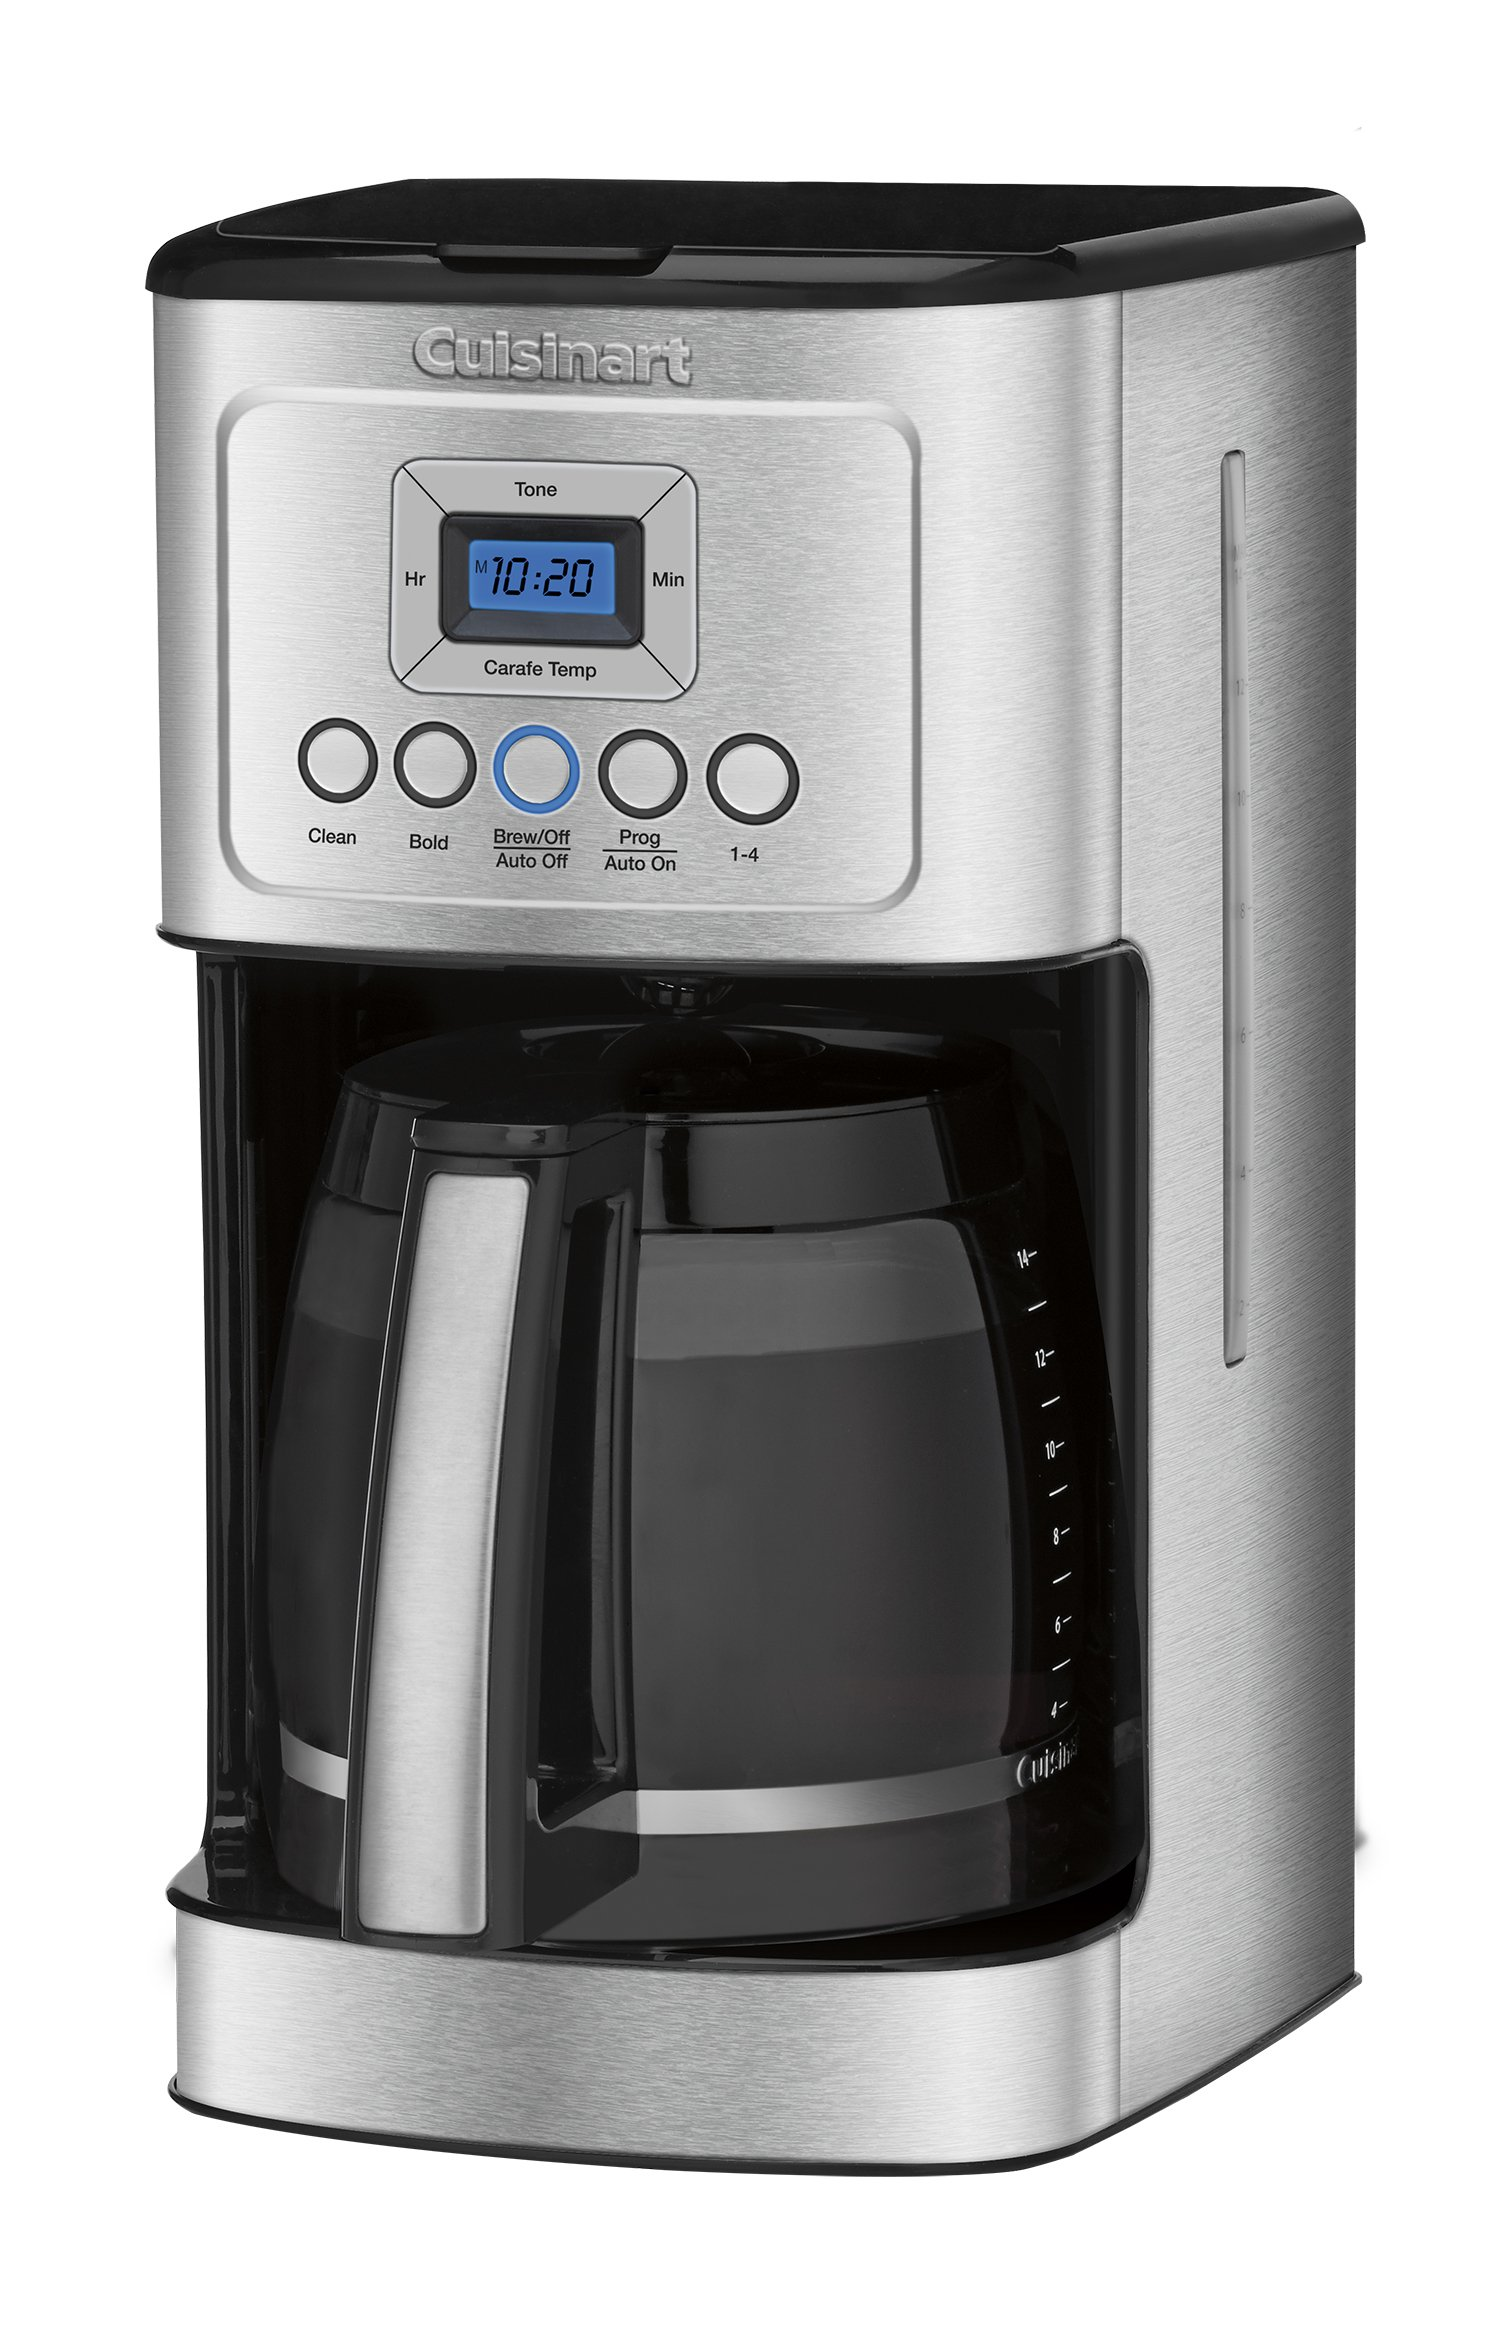 Cuisinart DCC-3200 PerfecTemp Programmable Coffeemaker, 14 Cup, Stainless Steel/Black by Cuisinart (Image #4)